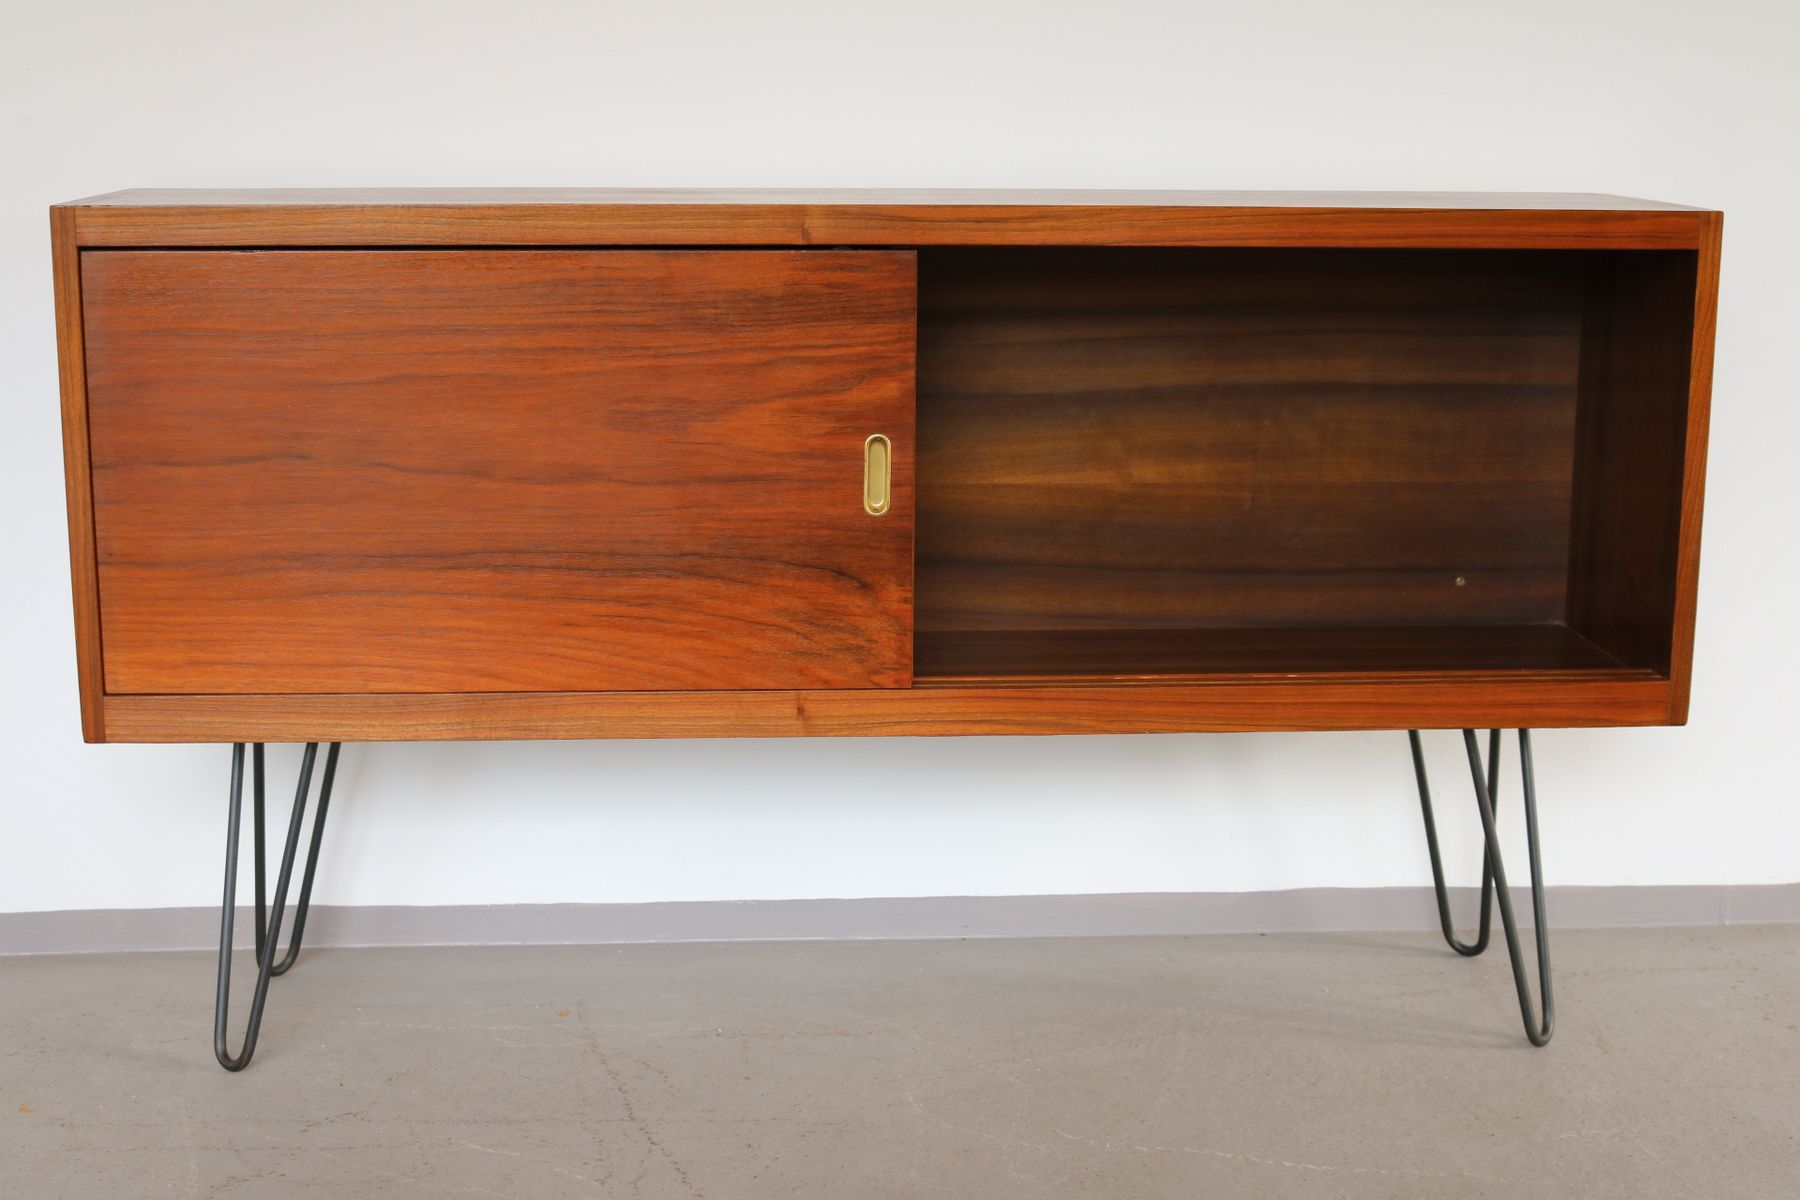 Vintage Sideboard Hairpin Legs Walnut Sideboard With Hairpin Legs And Lockable Doors